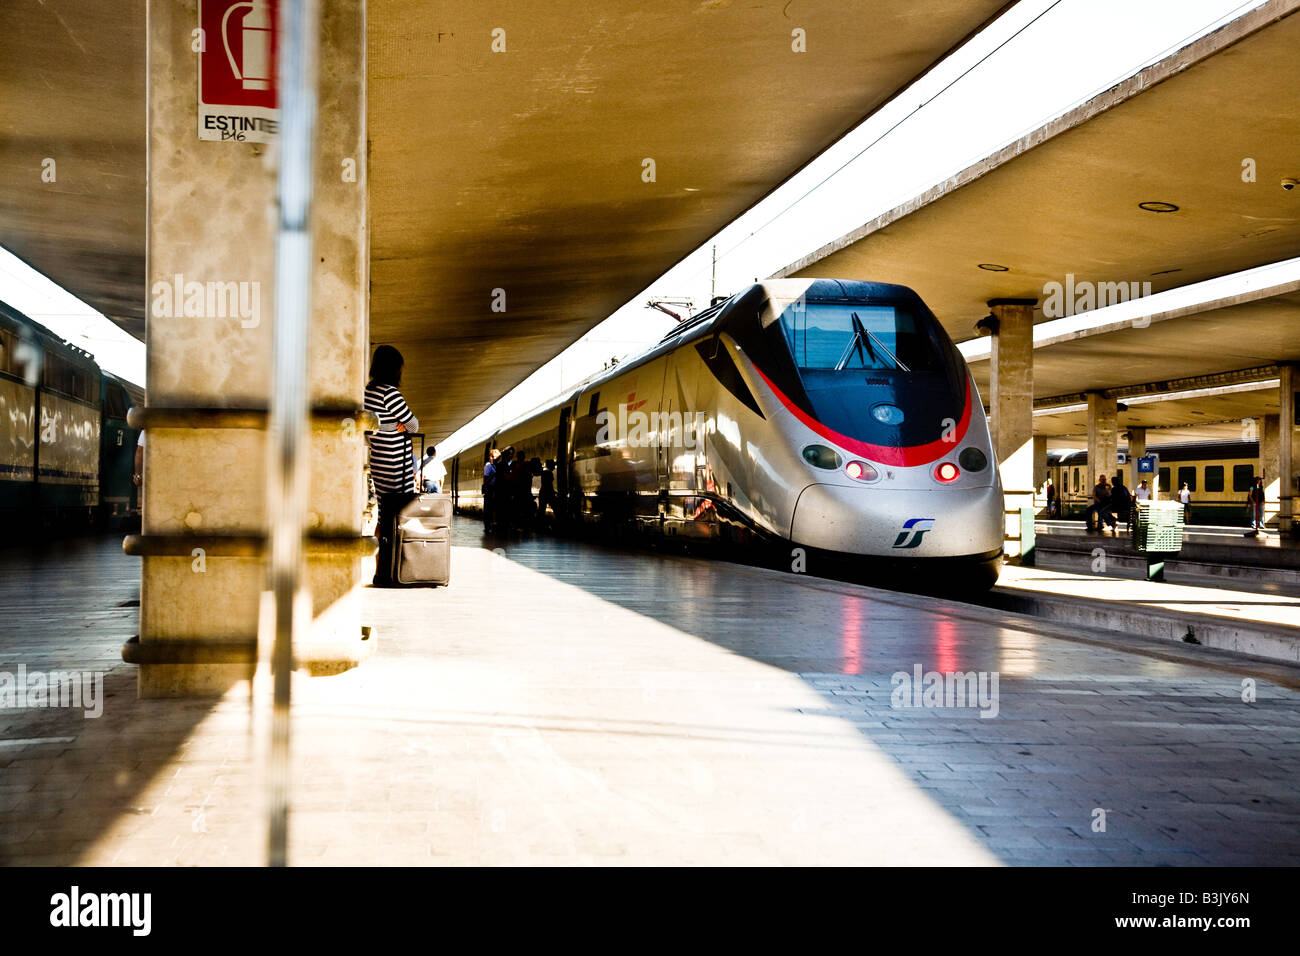 Eurostar Italia train about to leave Florence Station These High spped trains link up the major Cities of Italy Stock Photo